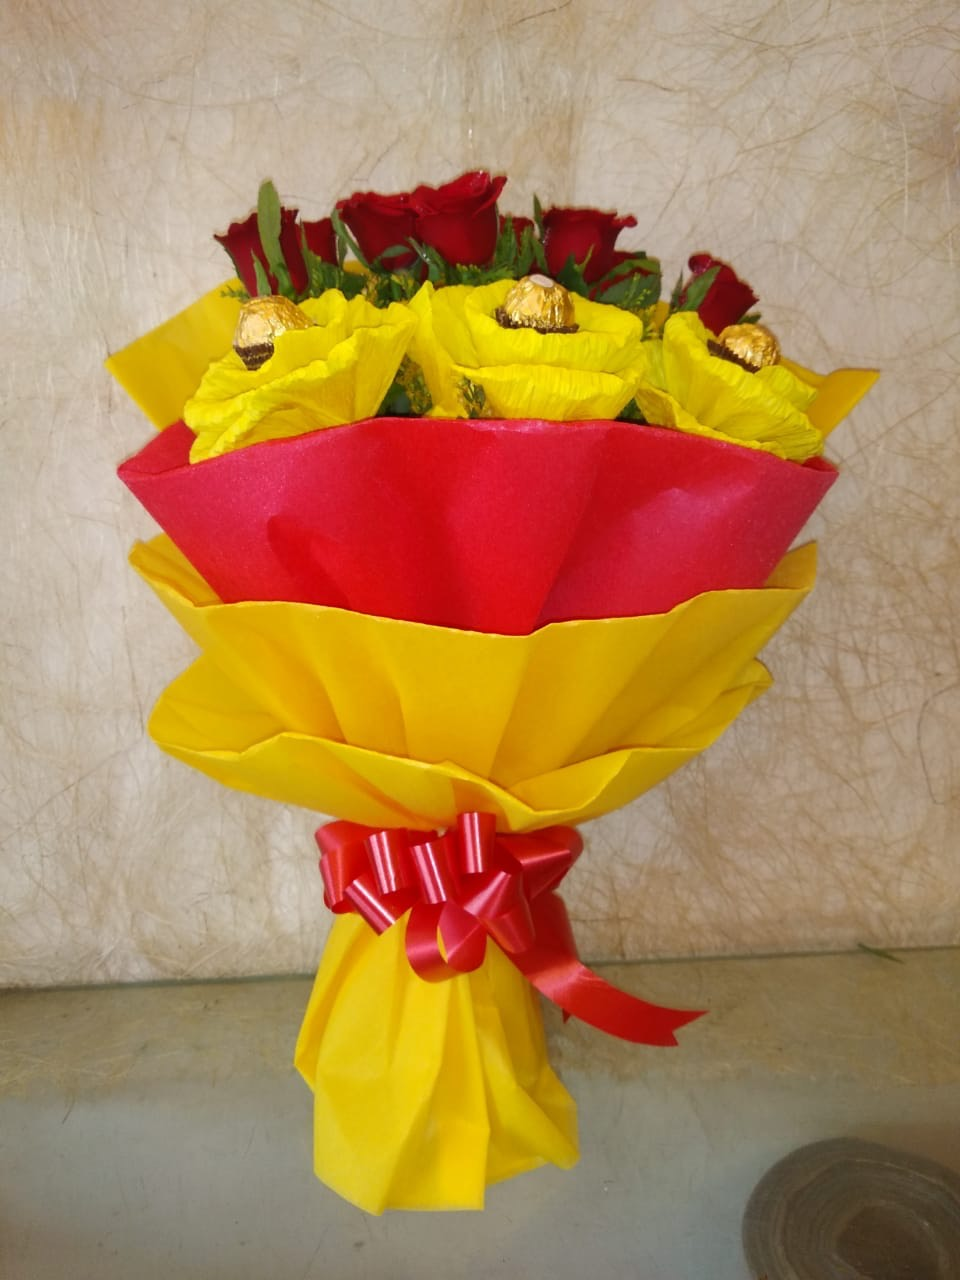 Flowers Delivery in Uniworld City GurgaonRed Roses Ferrero Rocher Bunch